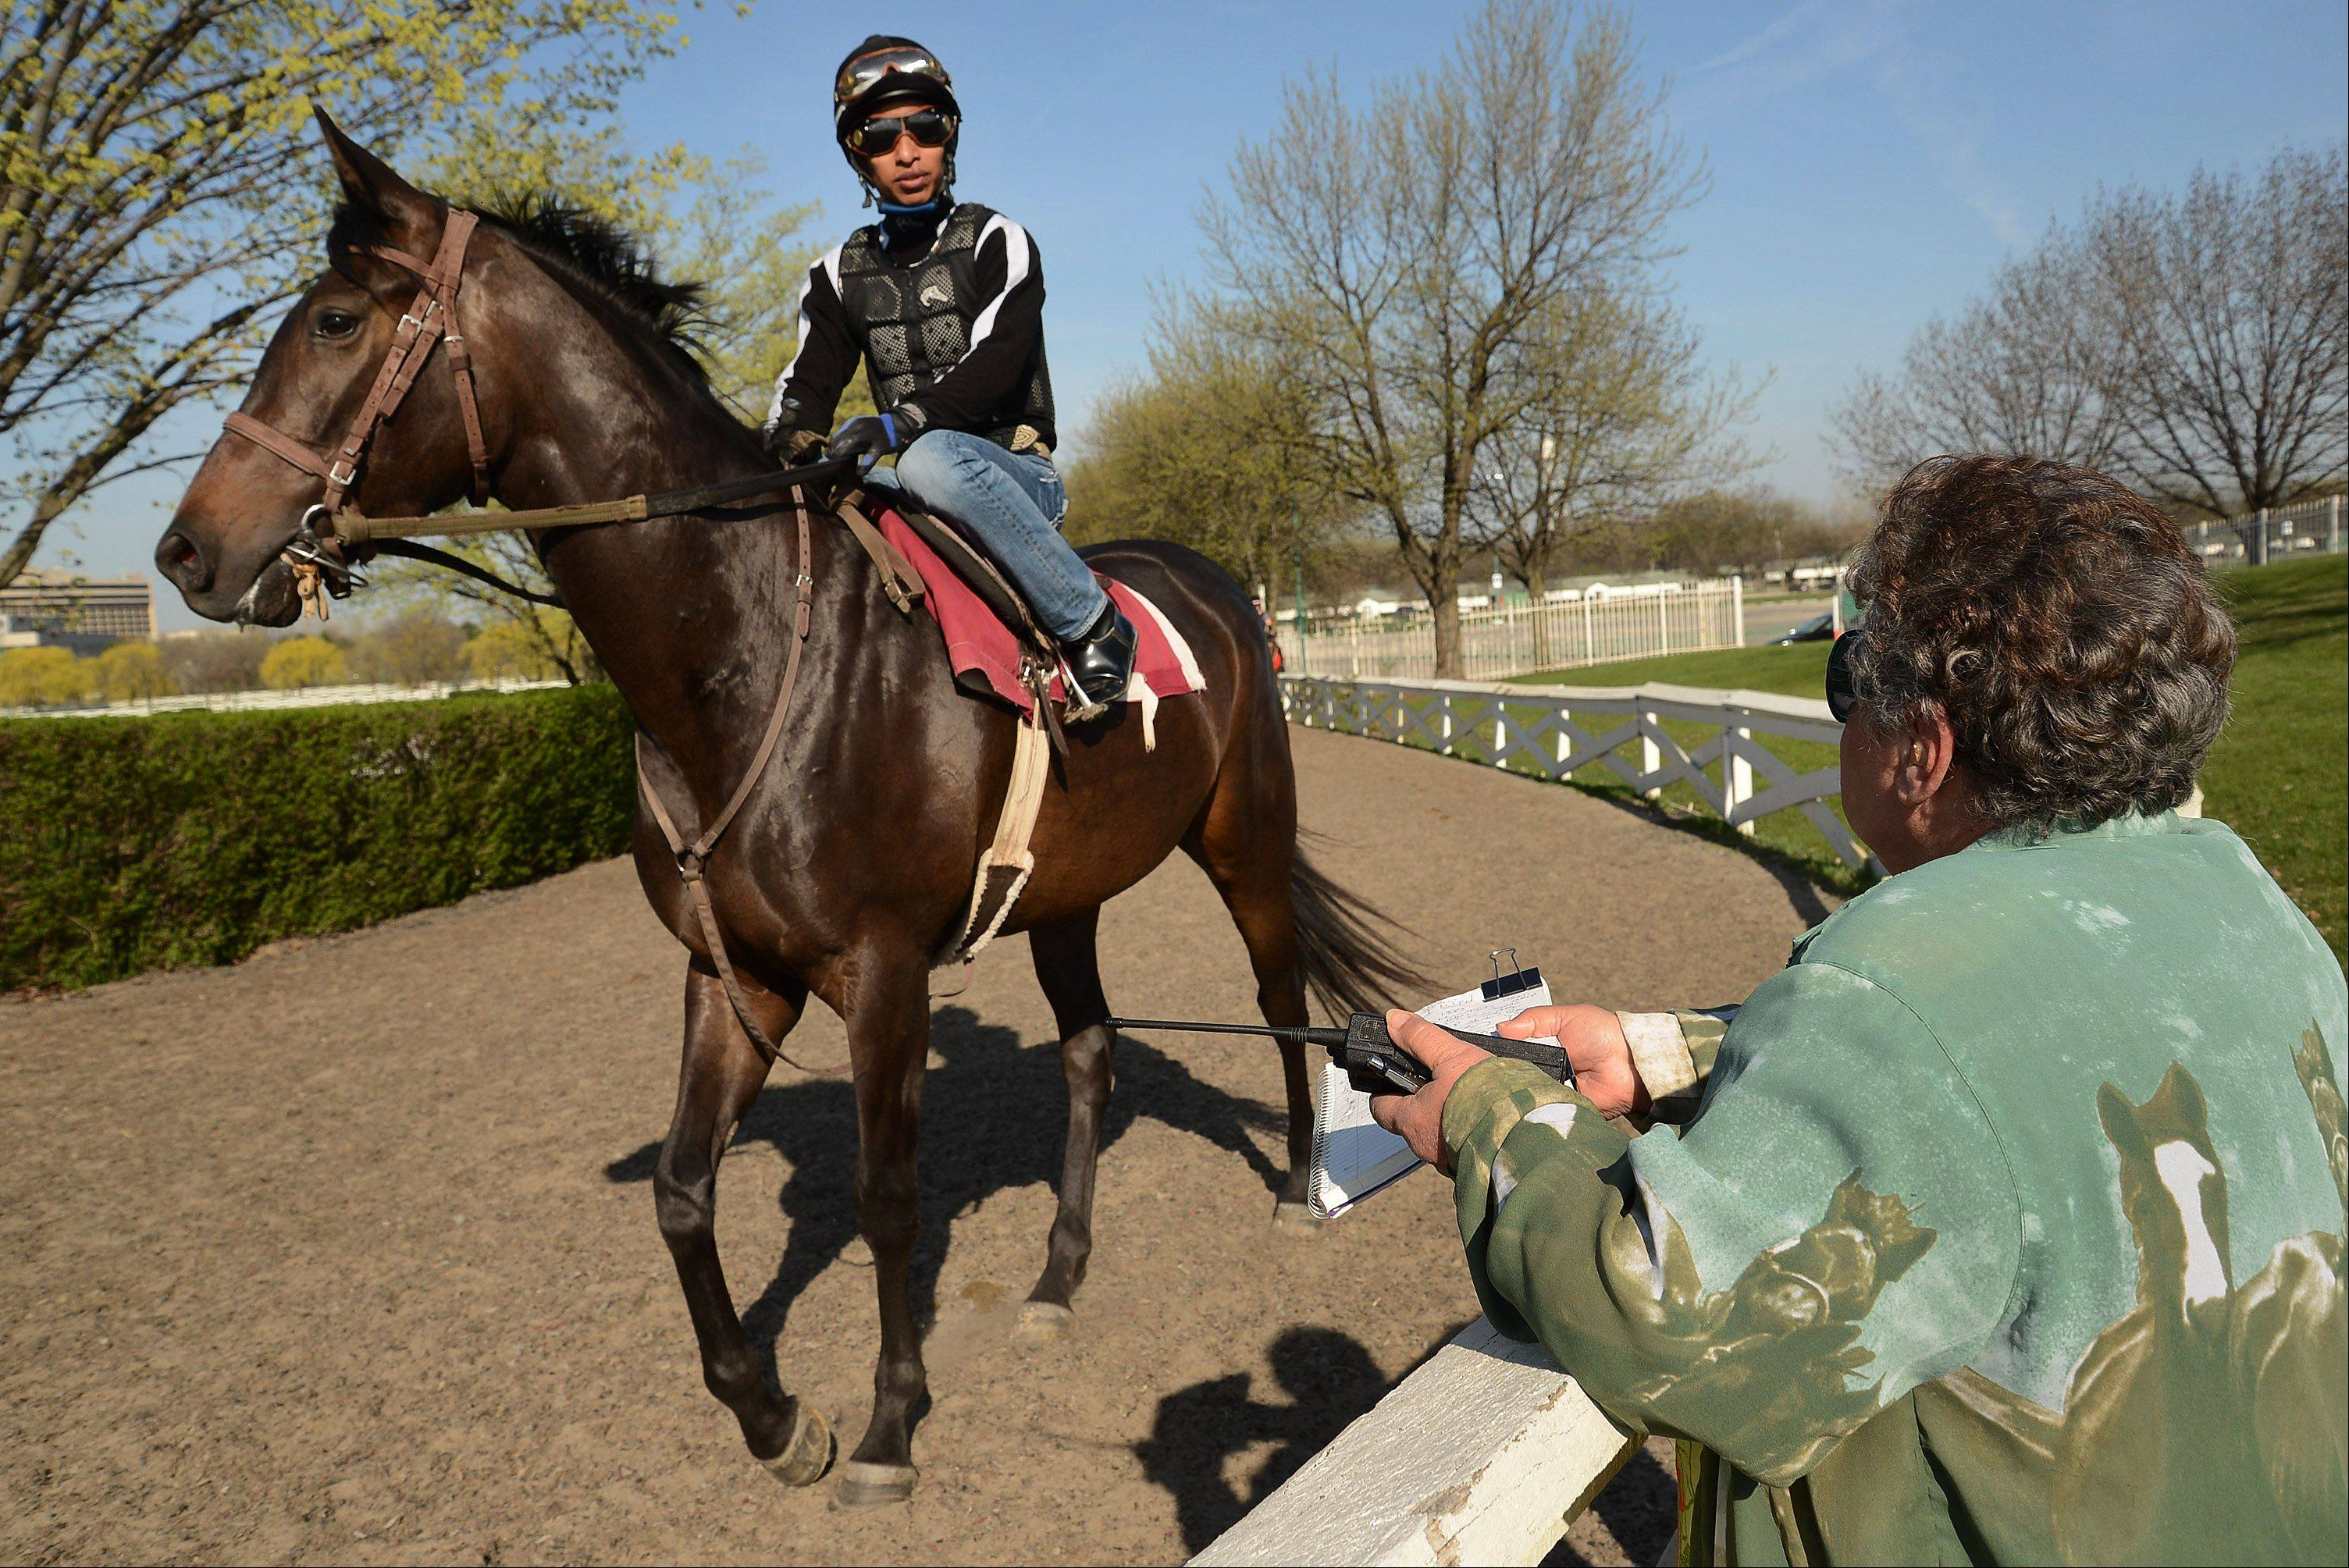 Spotter Gina Pantano checks in a horse on its way to the track in preparation for opening day at Arlington International Racecourse. Some well-known trainers and jockeys will call Arlington home this summer.